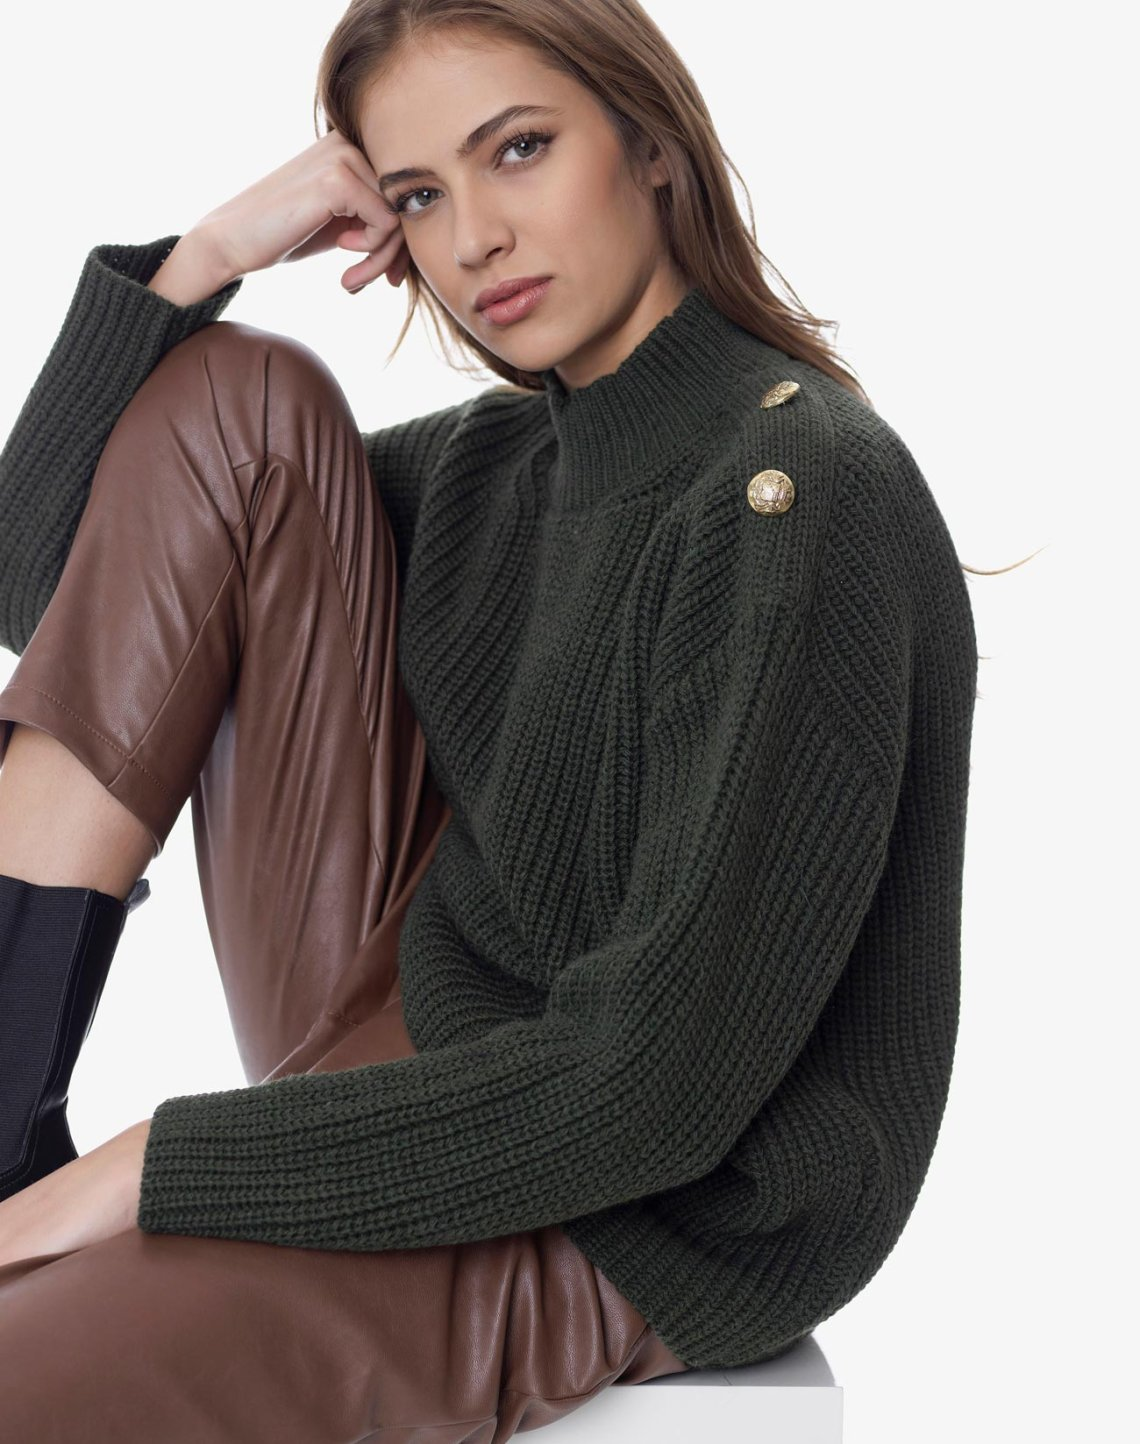 Knit top with buttons